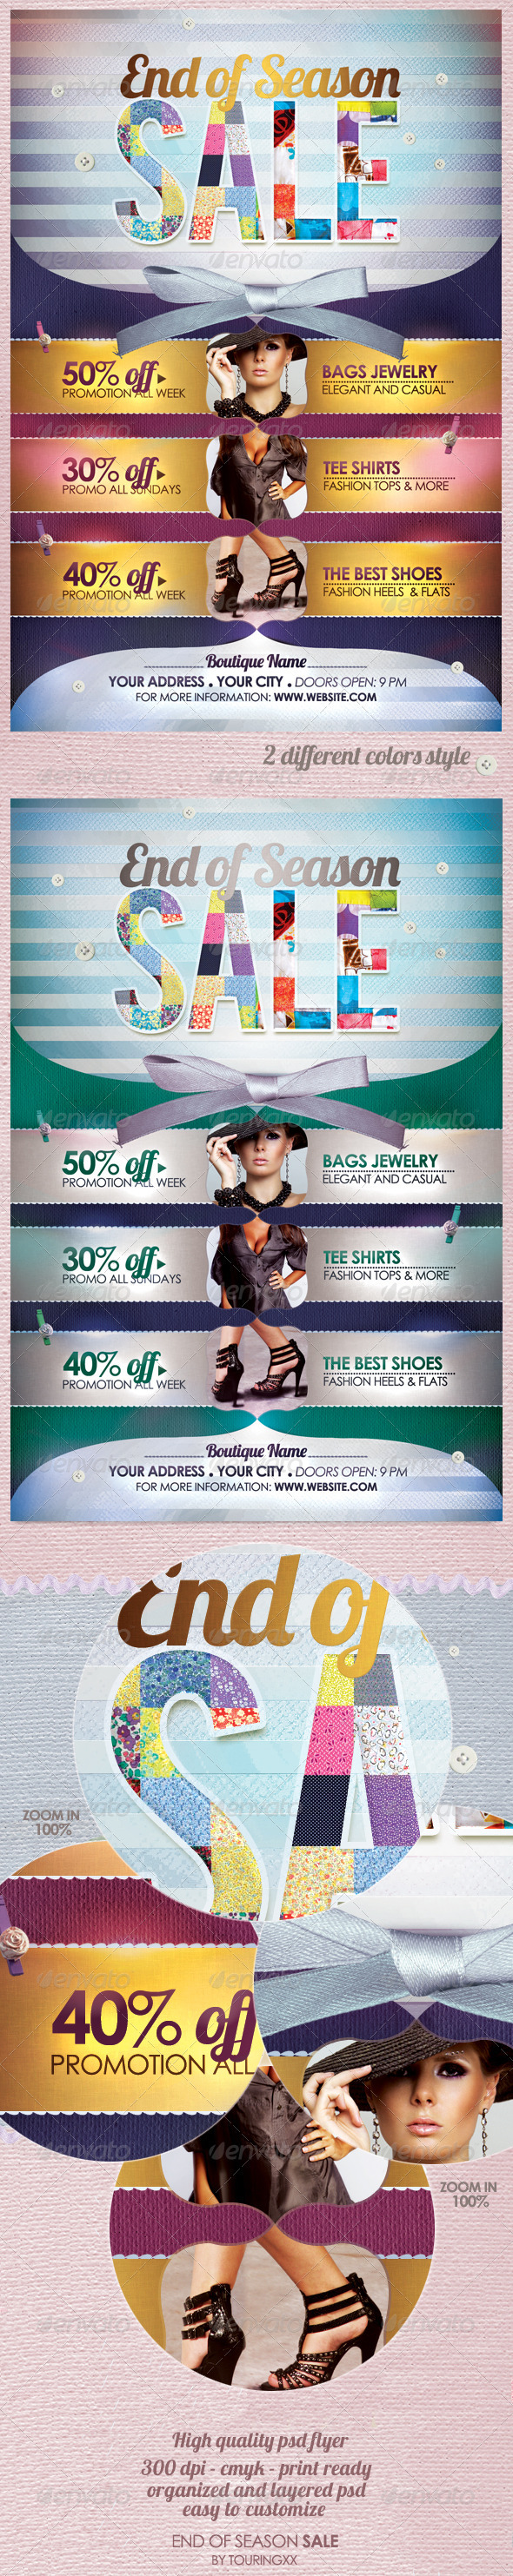 End of Season Sale Flyer Template - Commerce Flyers